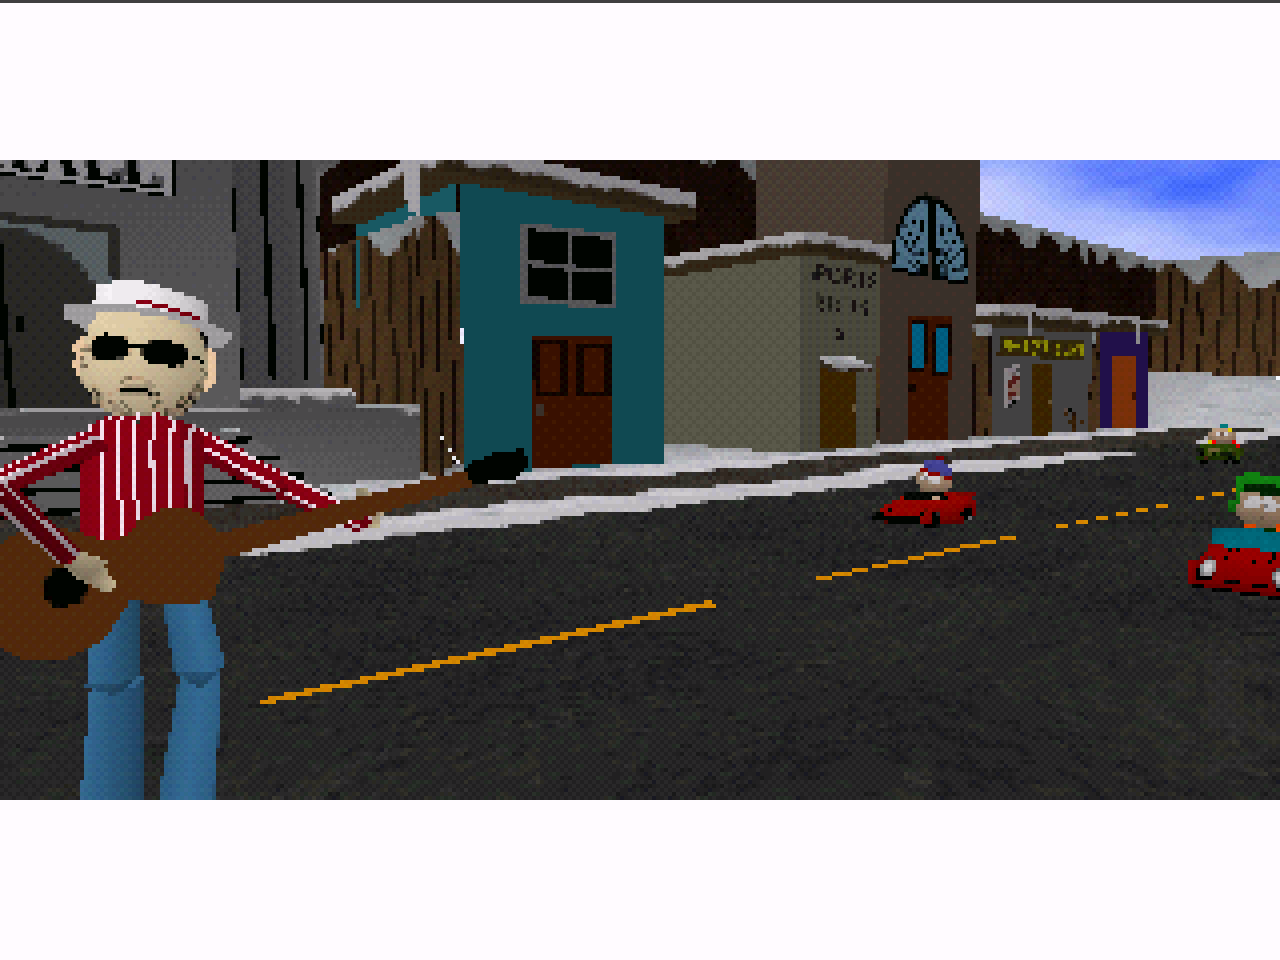 https://s3.eu-west-3.amazonaws.com/games.anthony-dessalles.com/South Park Rally PS1 2020 - Screenshots/South Park Rally-201125-180602.png